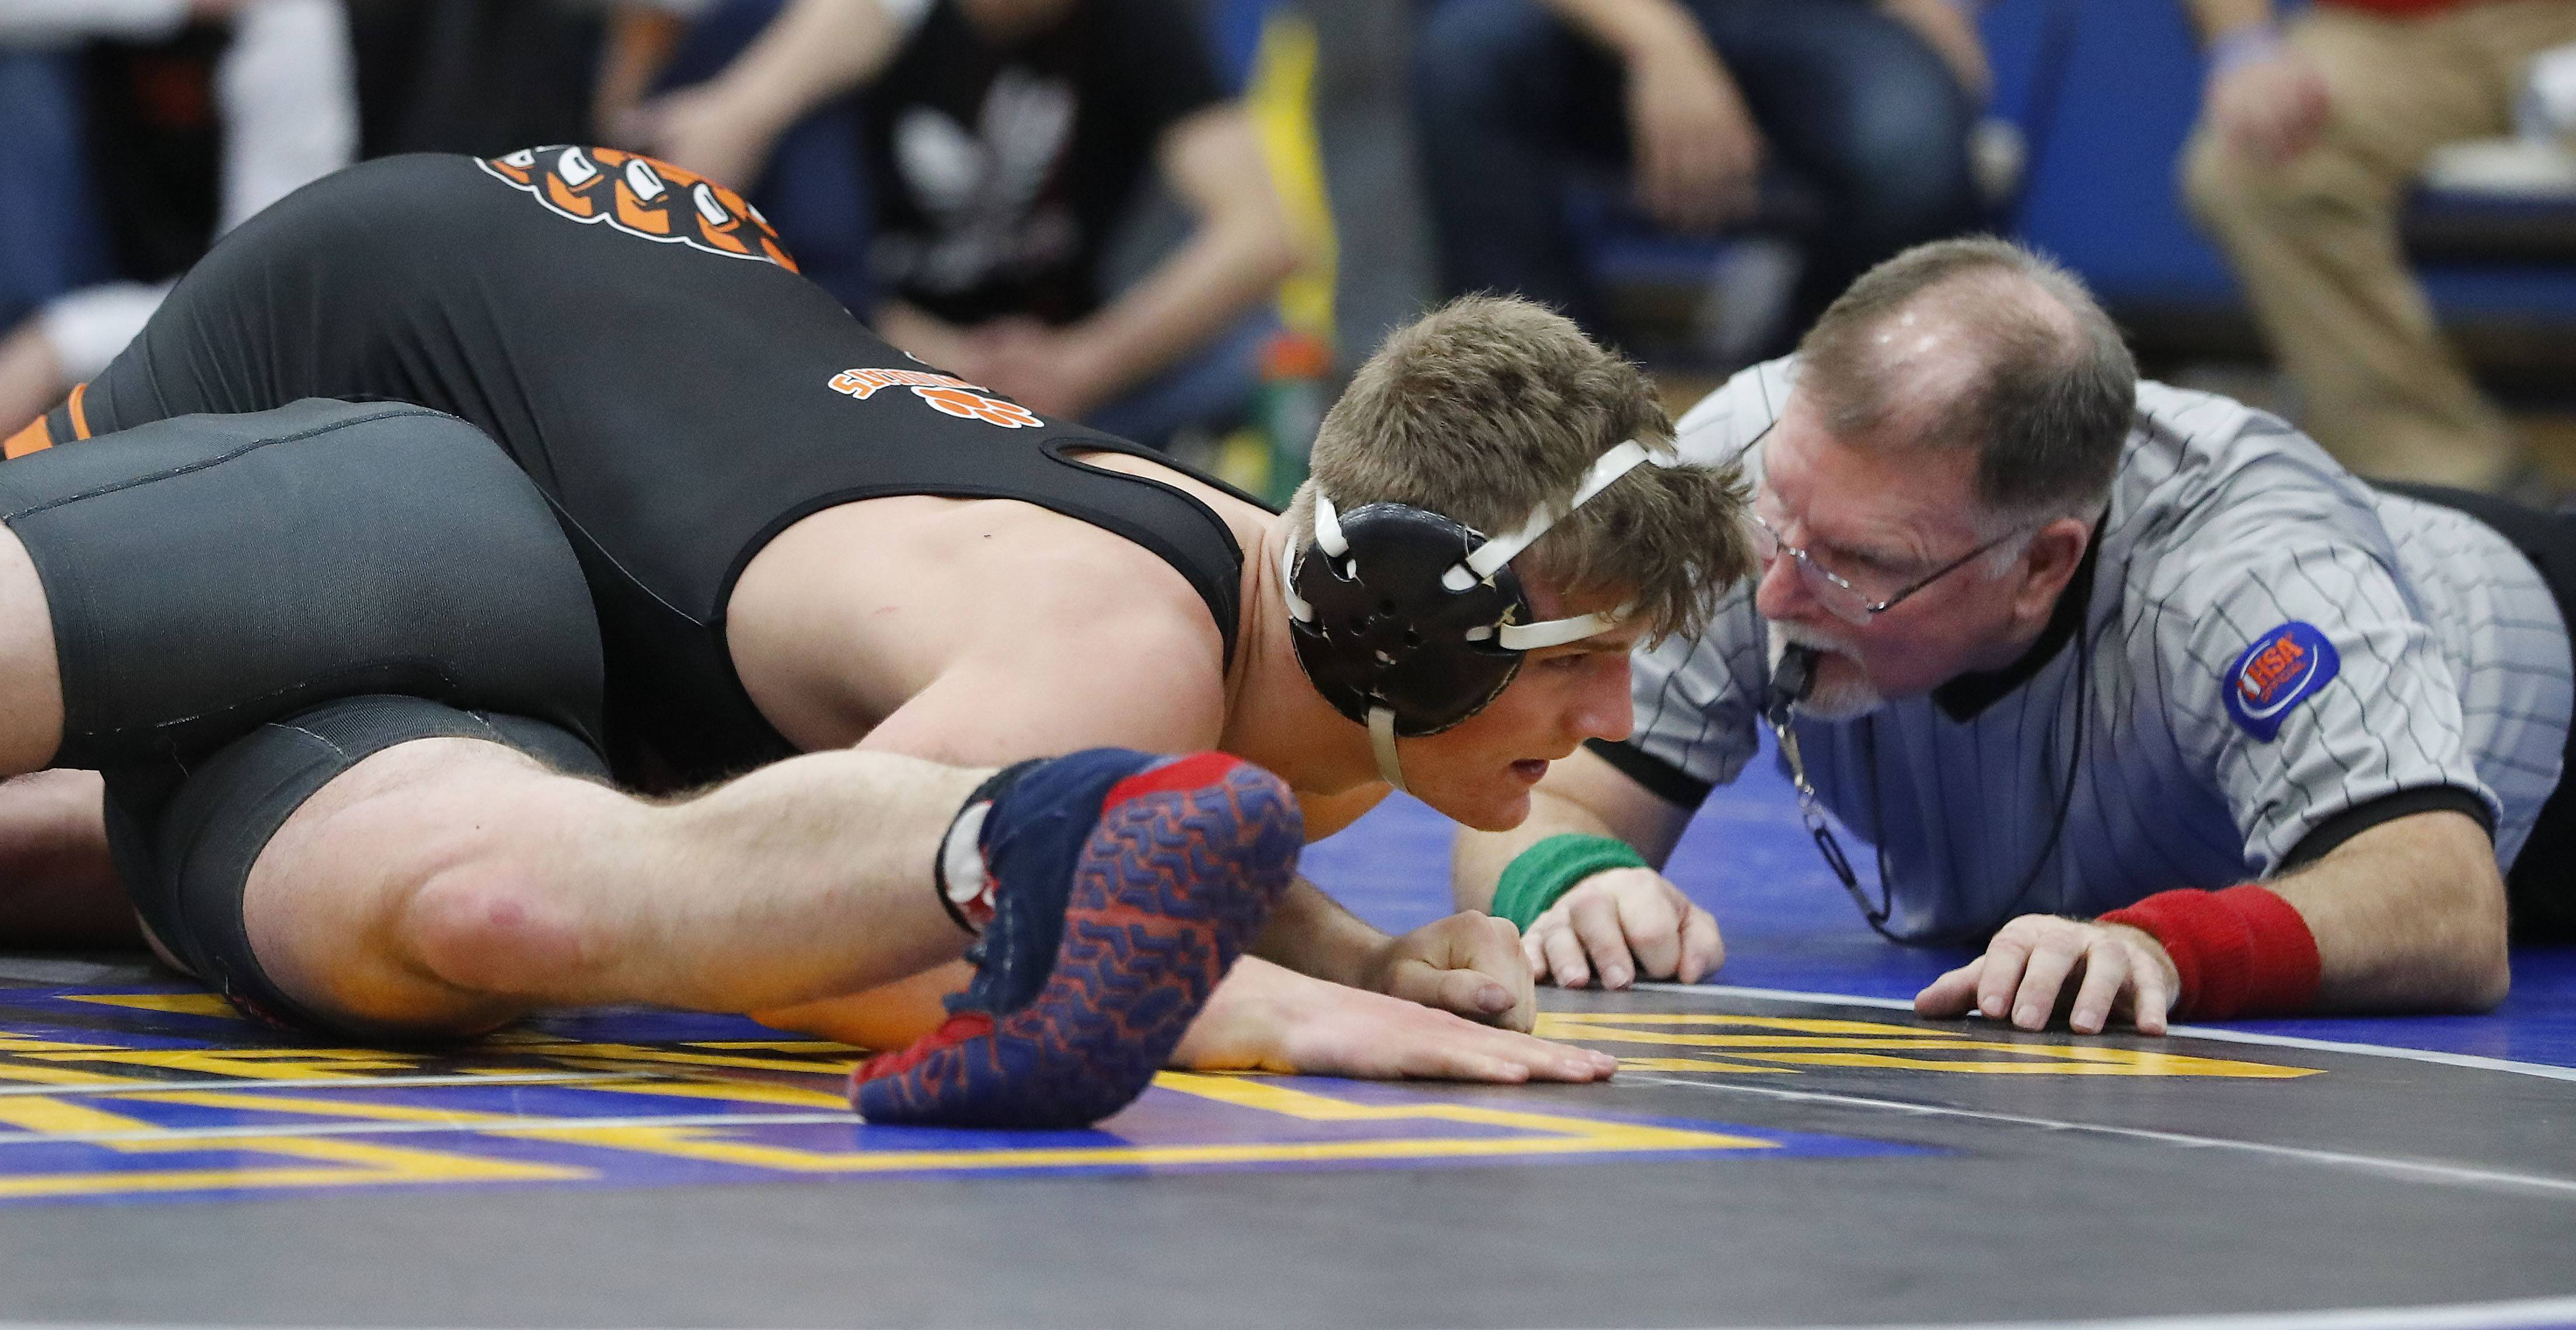 Libertyville's Ryan Damenti, right, pins Deerfield's Alex Latronica in the 170-pound third-place match during the Class 3A Warren regional Saturday in Gurnee.